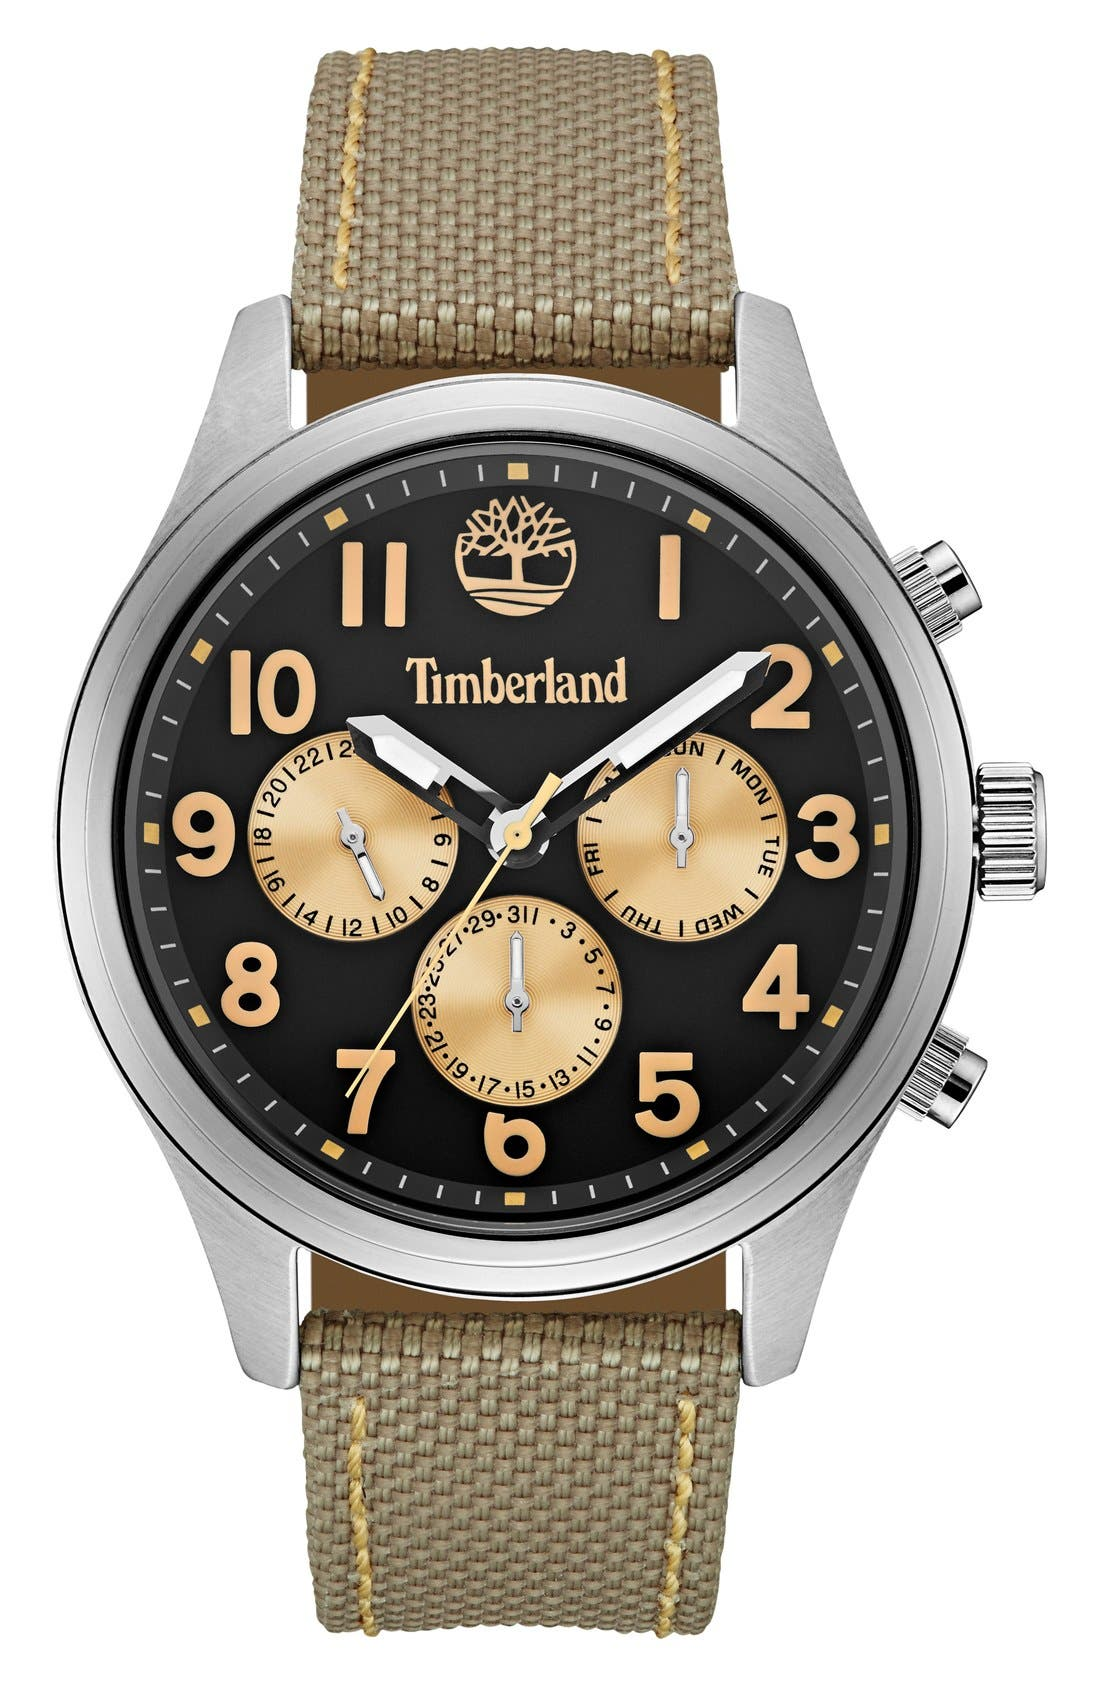 Timberland 'Rollins' Multifunction Nylon Strap Watch, 54mm